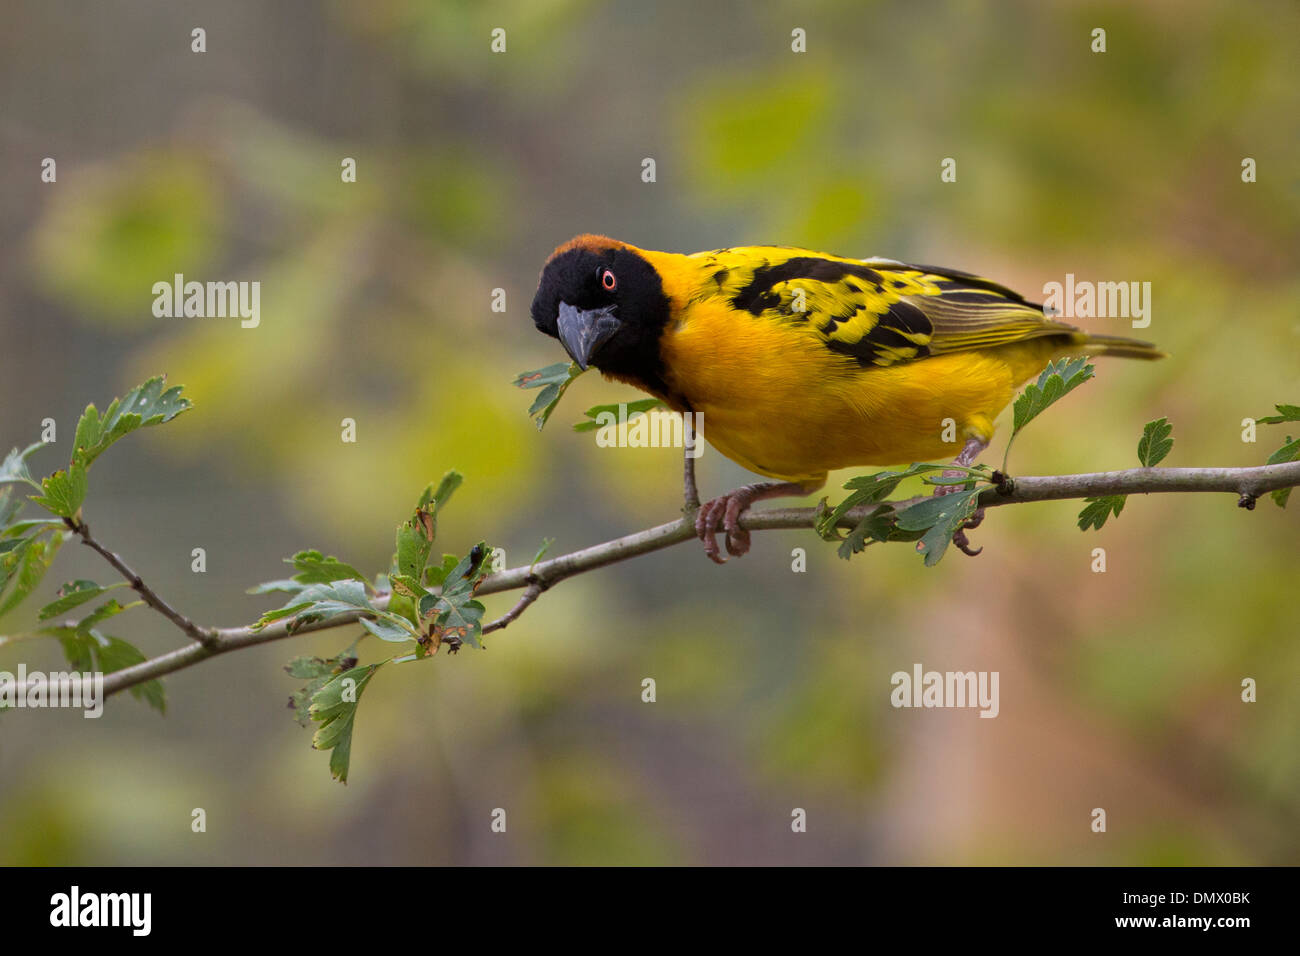 Black-headed Weaver - Stock Image